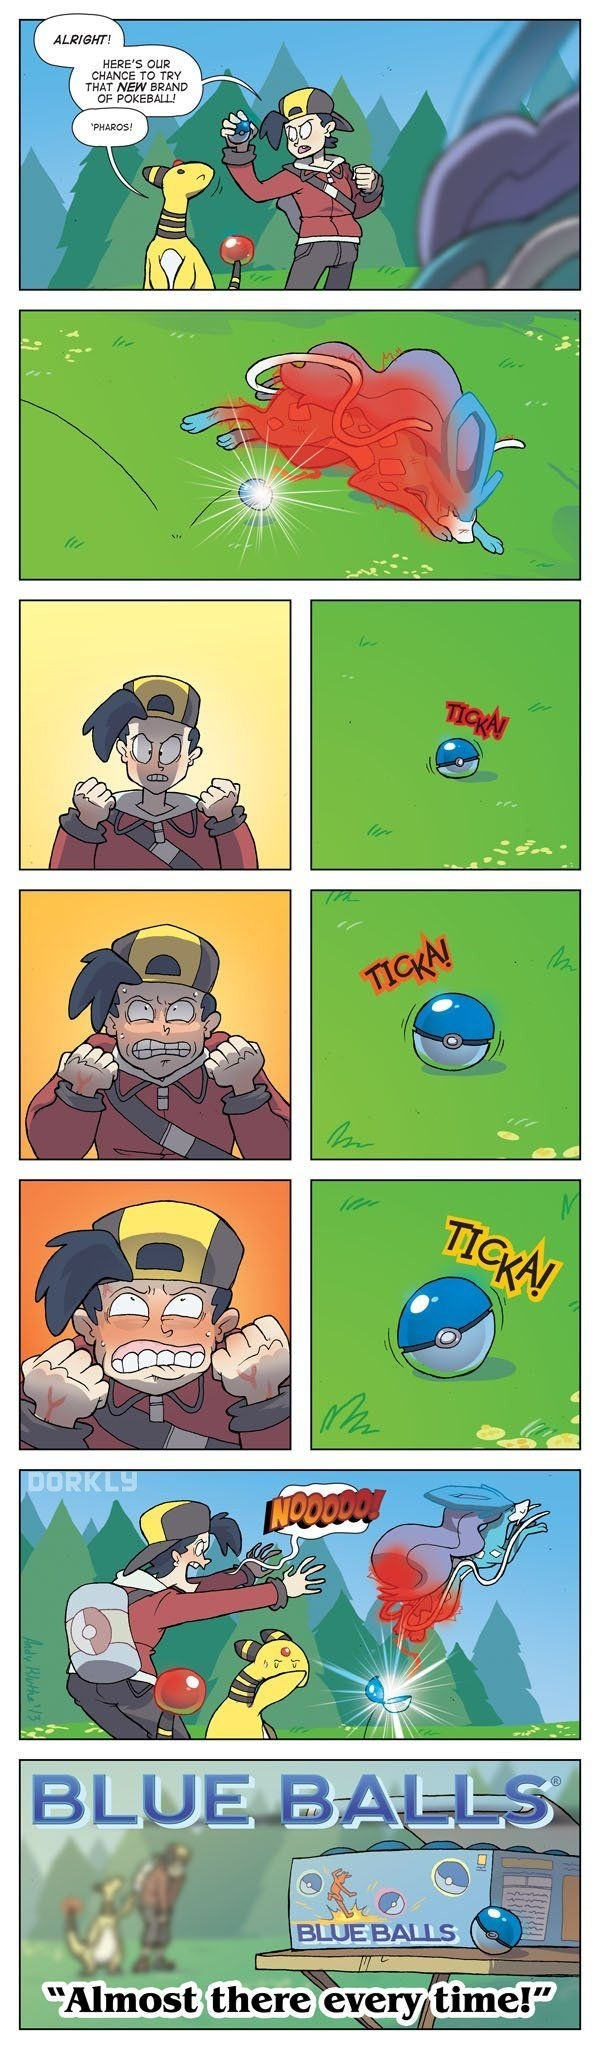 """Cartoon - ALRIGHT HERE'S OUR CHANCE TO TRY THAT NEW BRAND OF POKEBALL! PHAROS! TICKN TICKA! TICKA DORKLY NOOODO BLUE BALLS BLUE BALS Almost there every time!"""""""